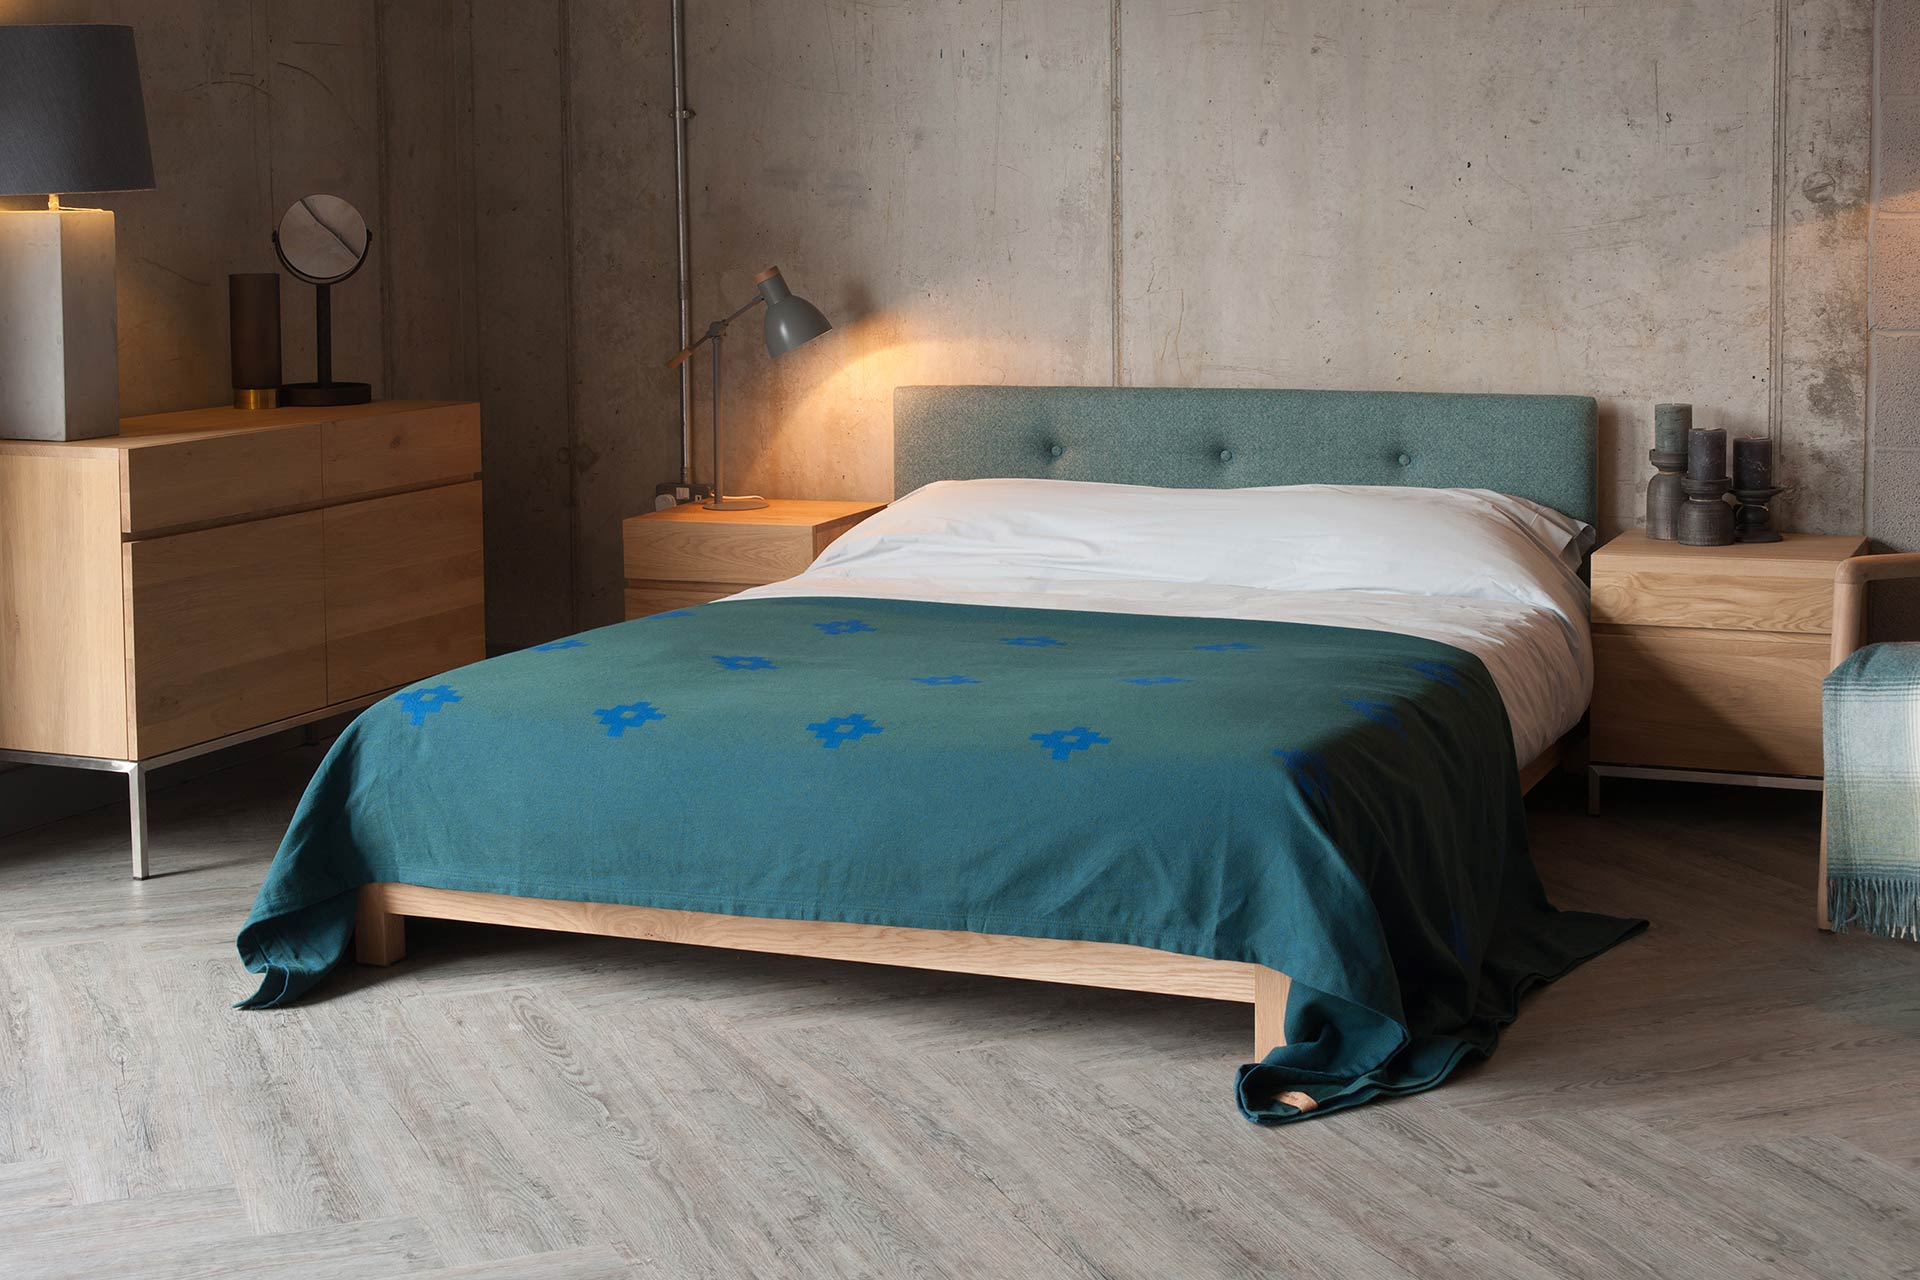 low wooden bed frame with upholstered headboard - the Iona Bed